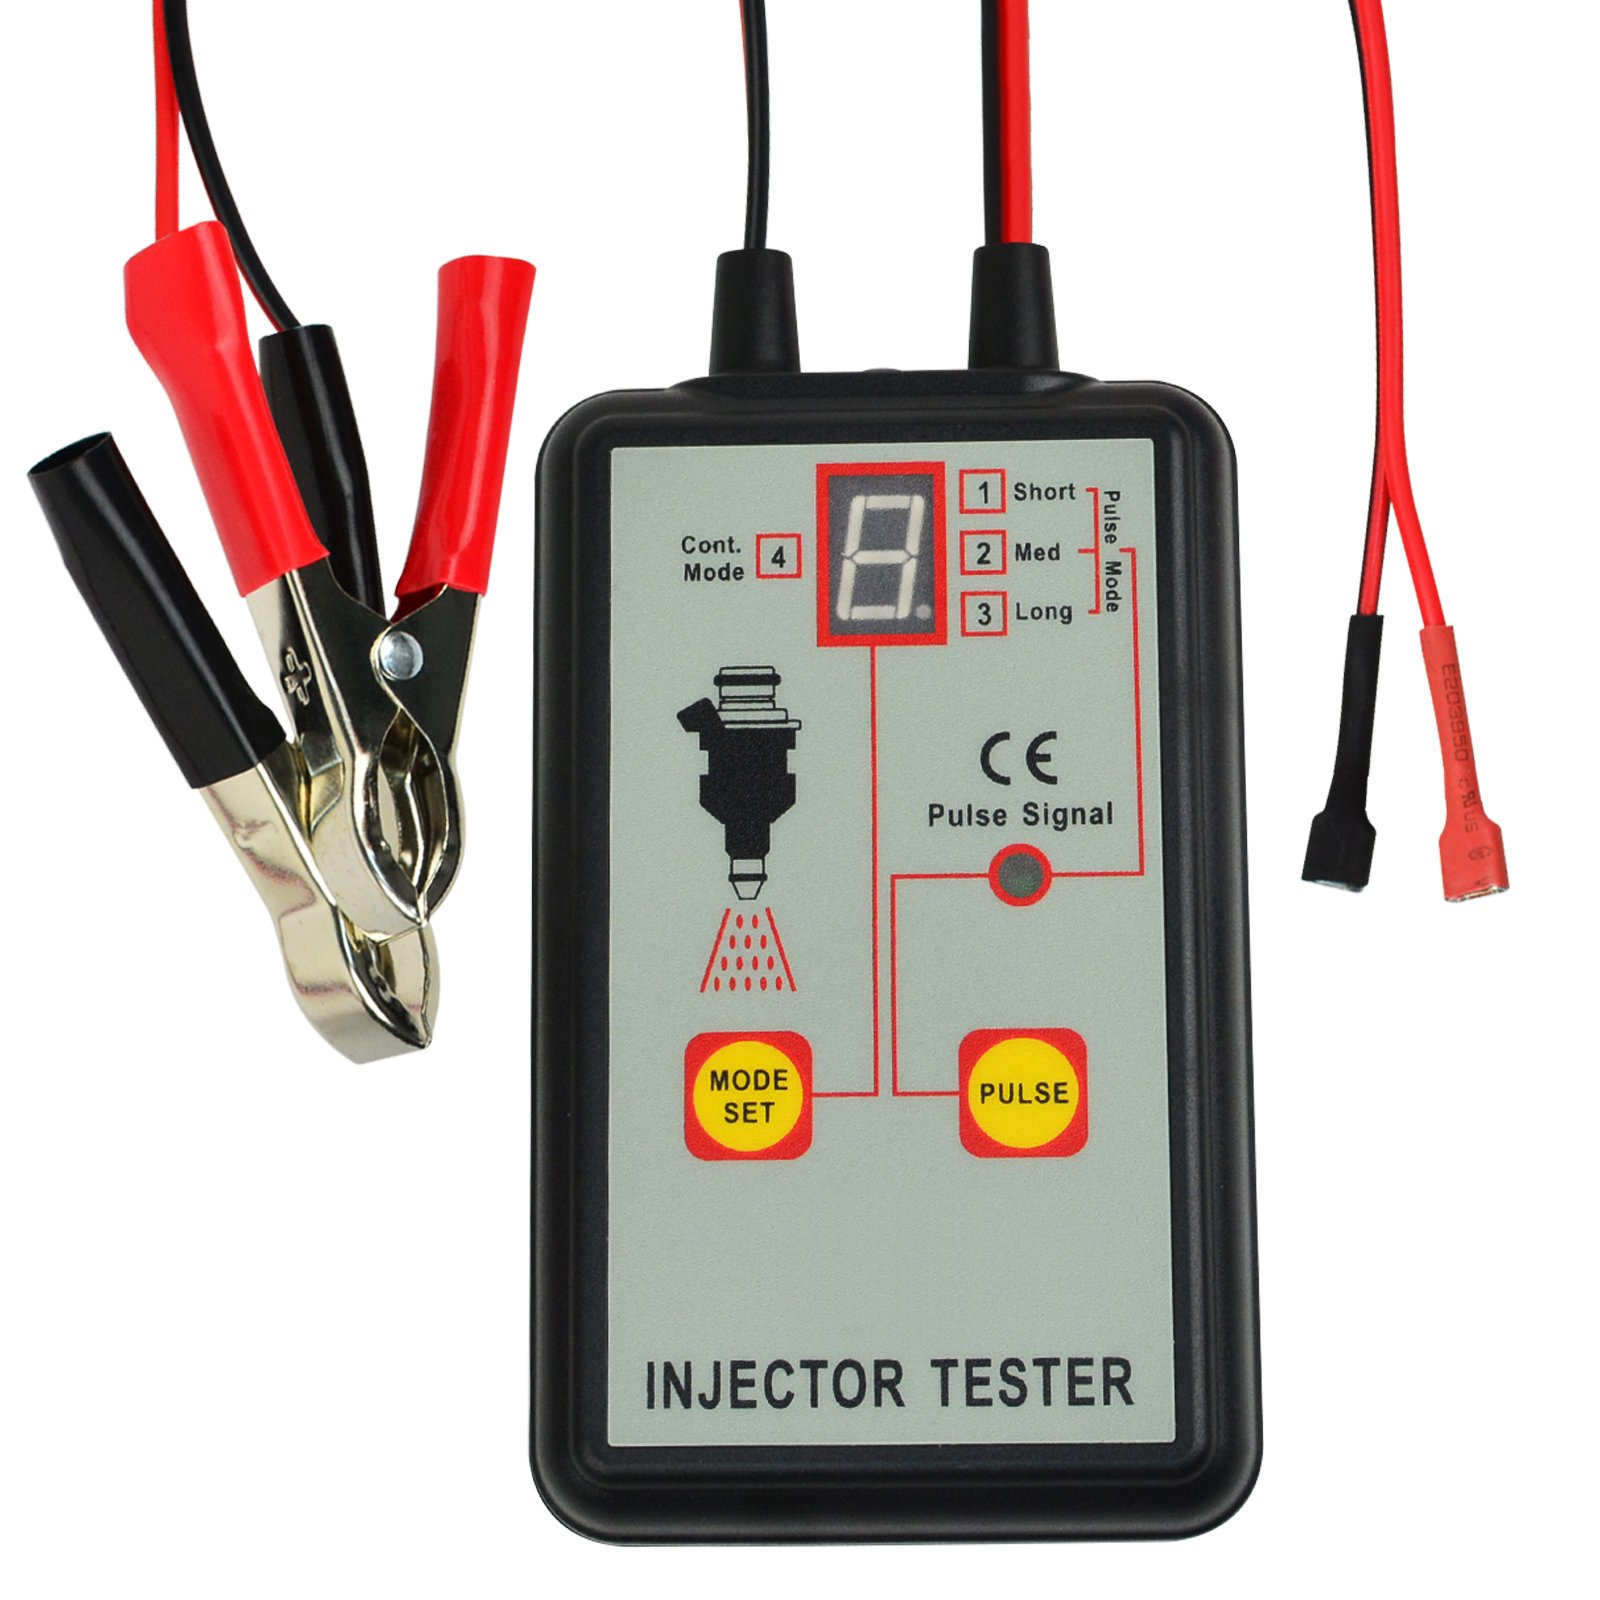 Automotive Fuel Injector Tester, 12V 4 Pulse Modes, Handheld Car Vehicle Fuel Pressure System Diagnostic Scan Testing Tool Gauge, Individual Test Stuck/Leaking/Burnt-out Problem by Gain Express (Image #1)